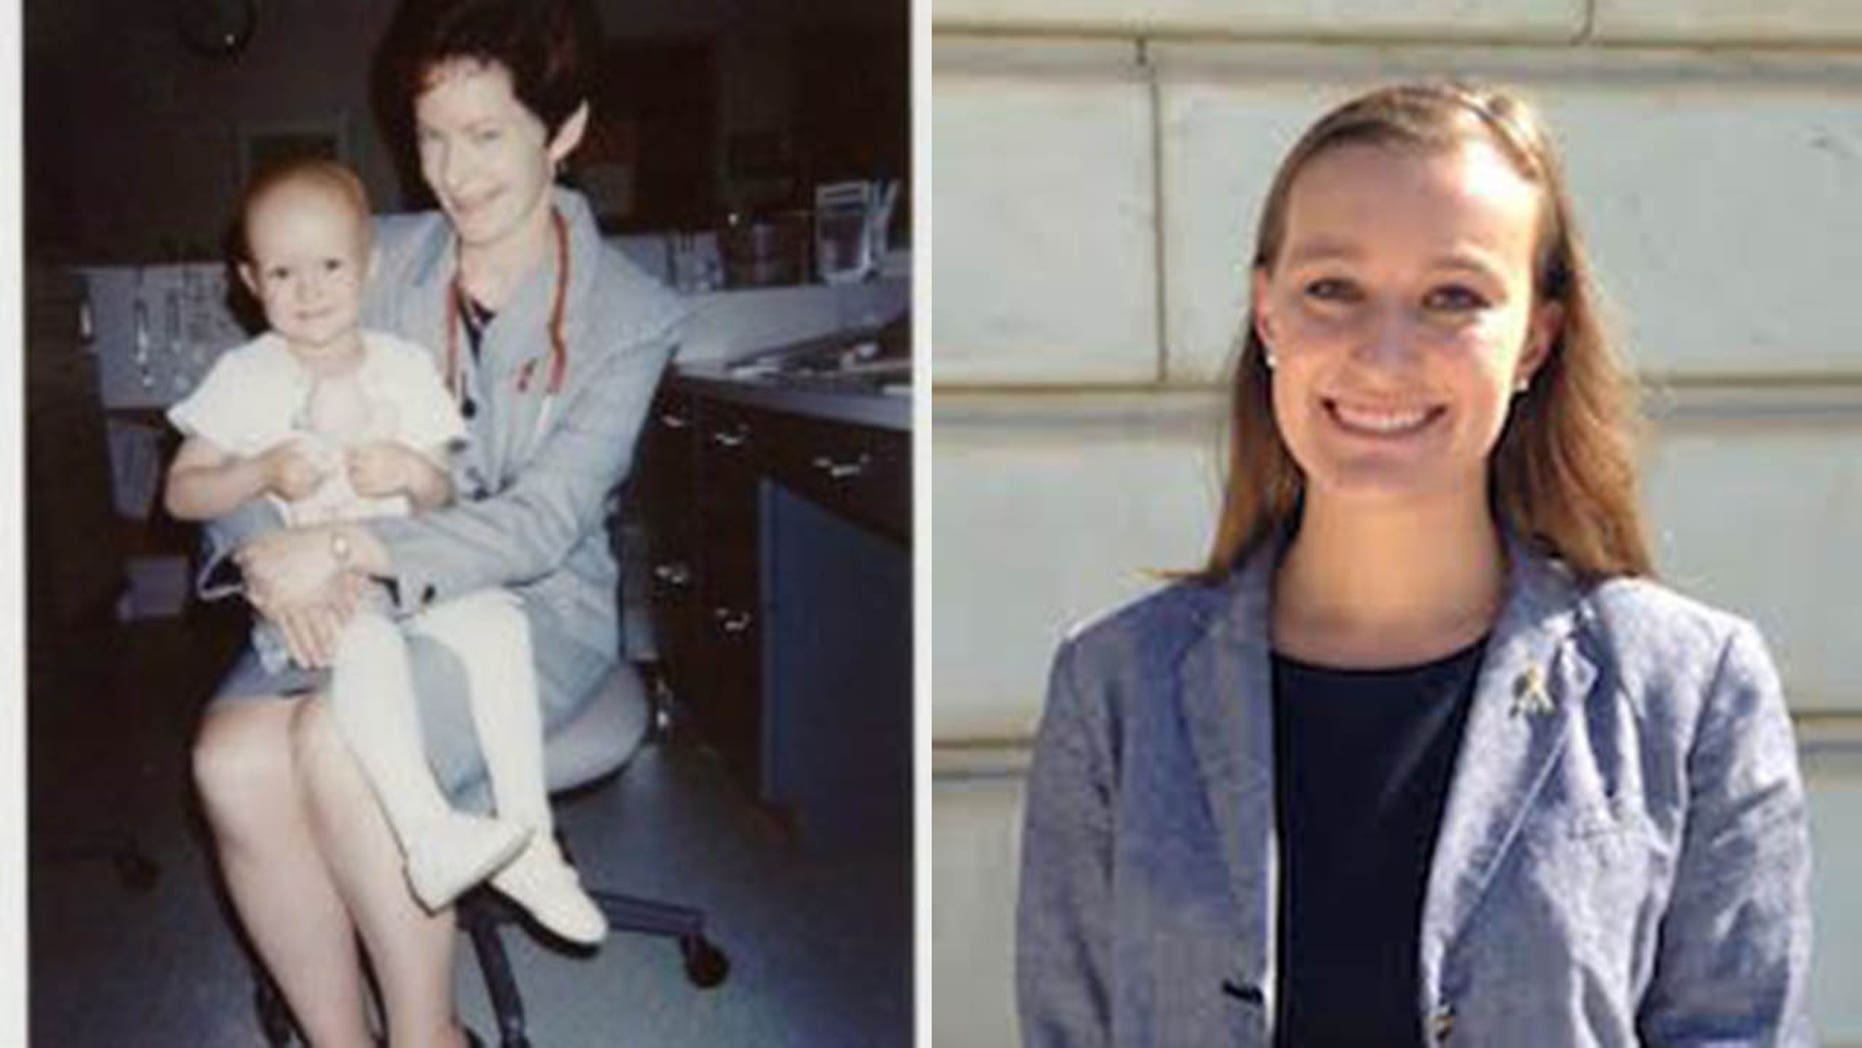 Jennifer Toth, pictured left with a member of her care team at CHOP, and right present day, now works as a nurse on an inpatient oncology unit at CHOP.